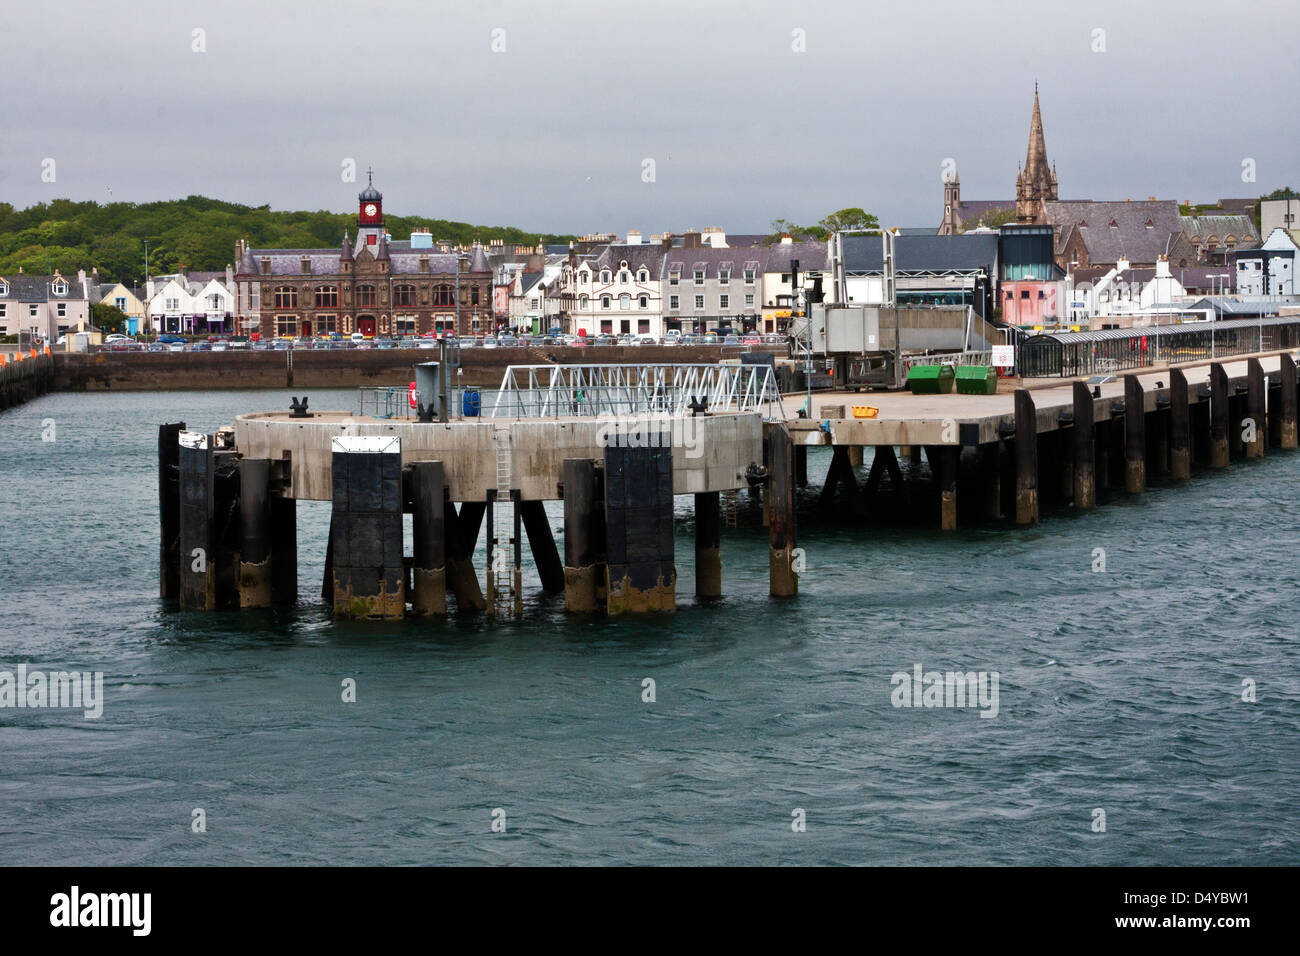 The harbour, wharfs and docks of Stornoway on the Isle of Lewis, Outer Hebrides, Scotland, - Stock Image